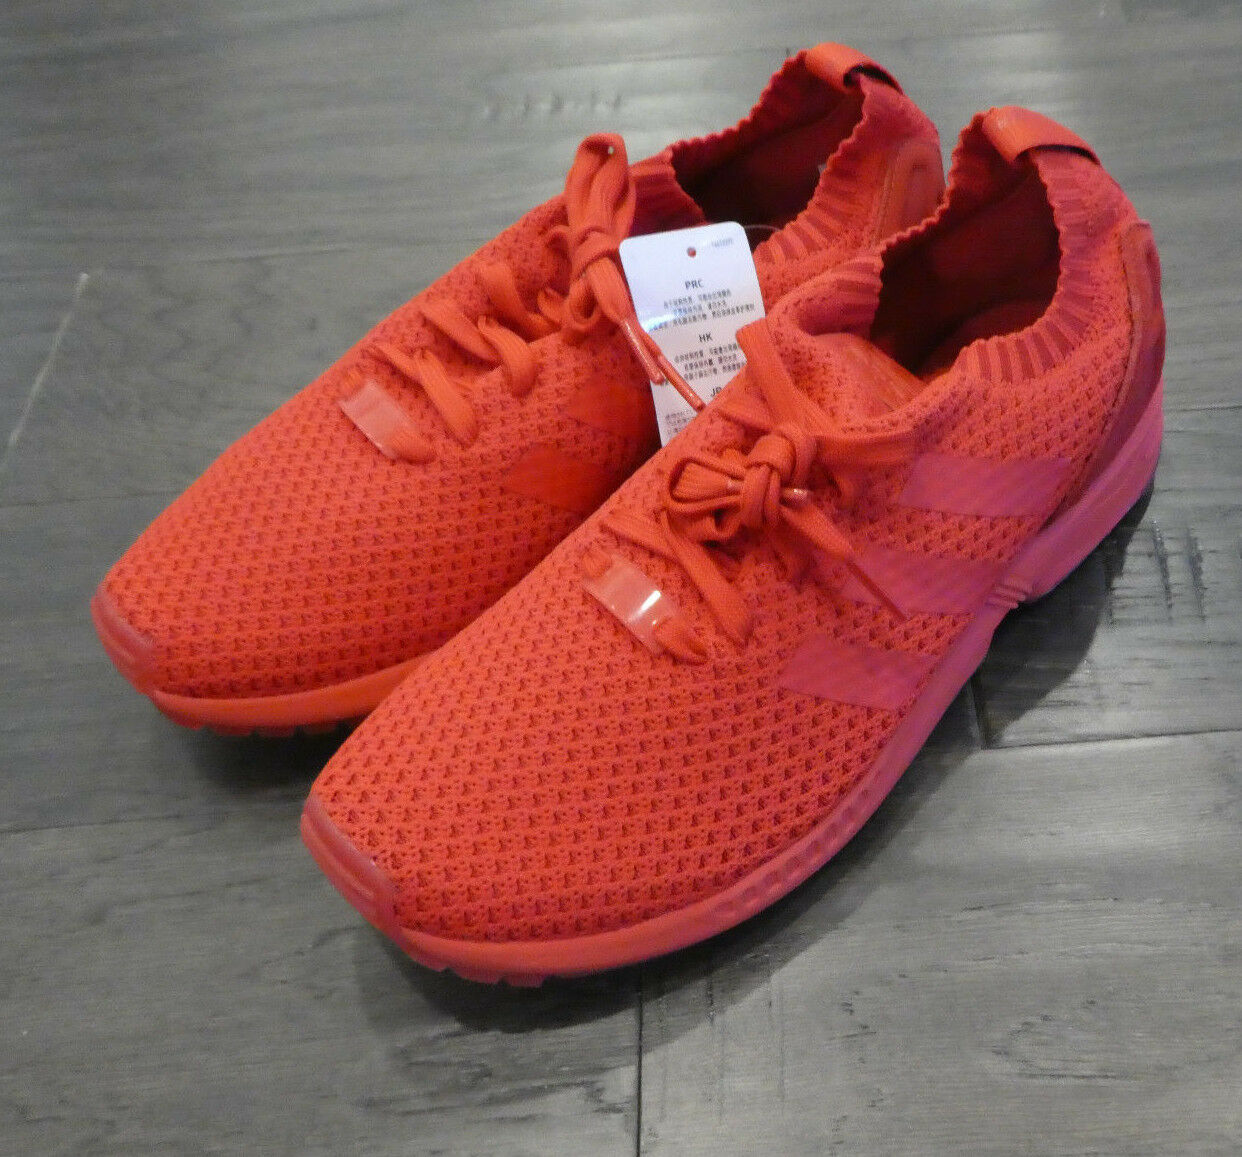 pretty nice a19c3 96fef Adidas ZX Flux PK Primeknit shoes mens new sneakers red october S76497  running